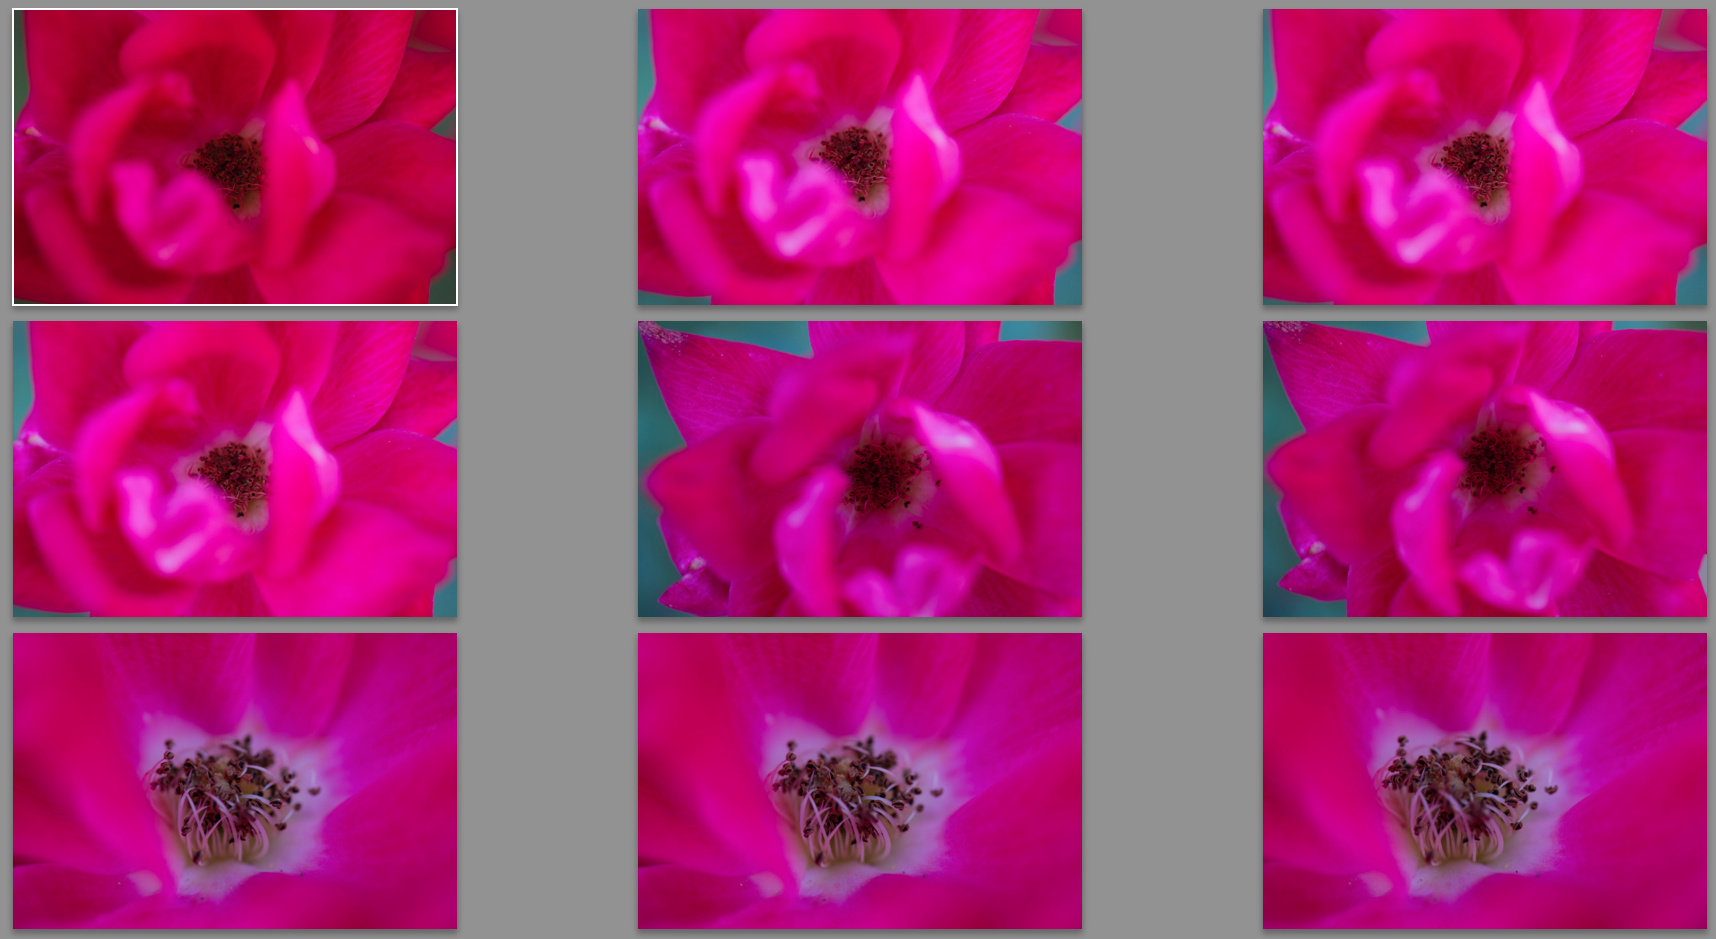 5 Little Known Lightroom Tools That Will Make Your Photos Better